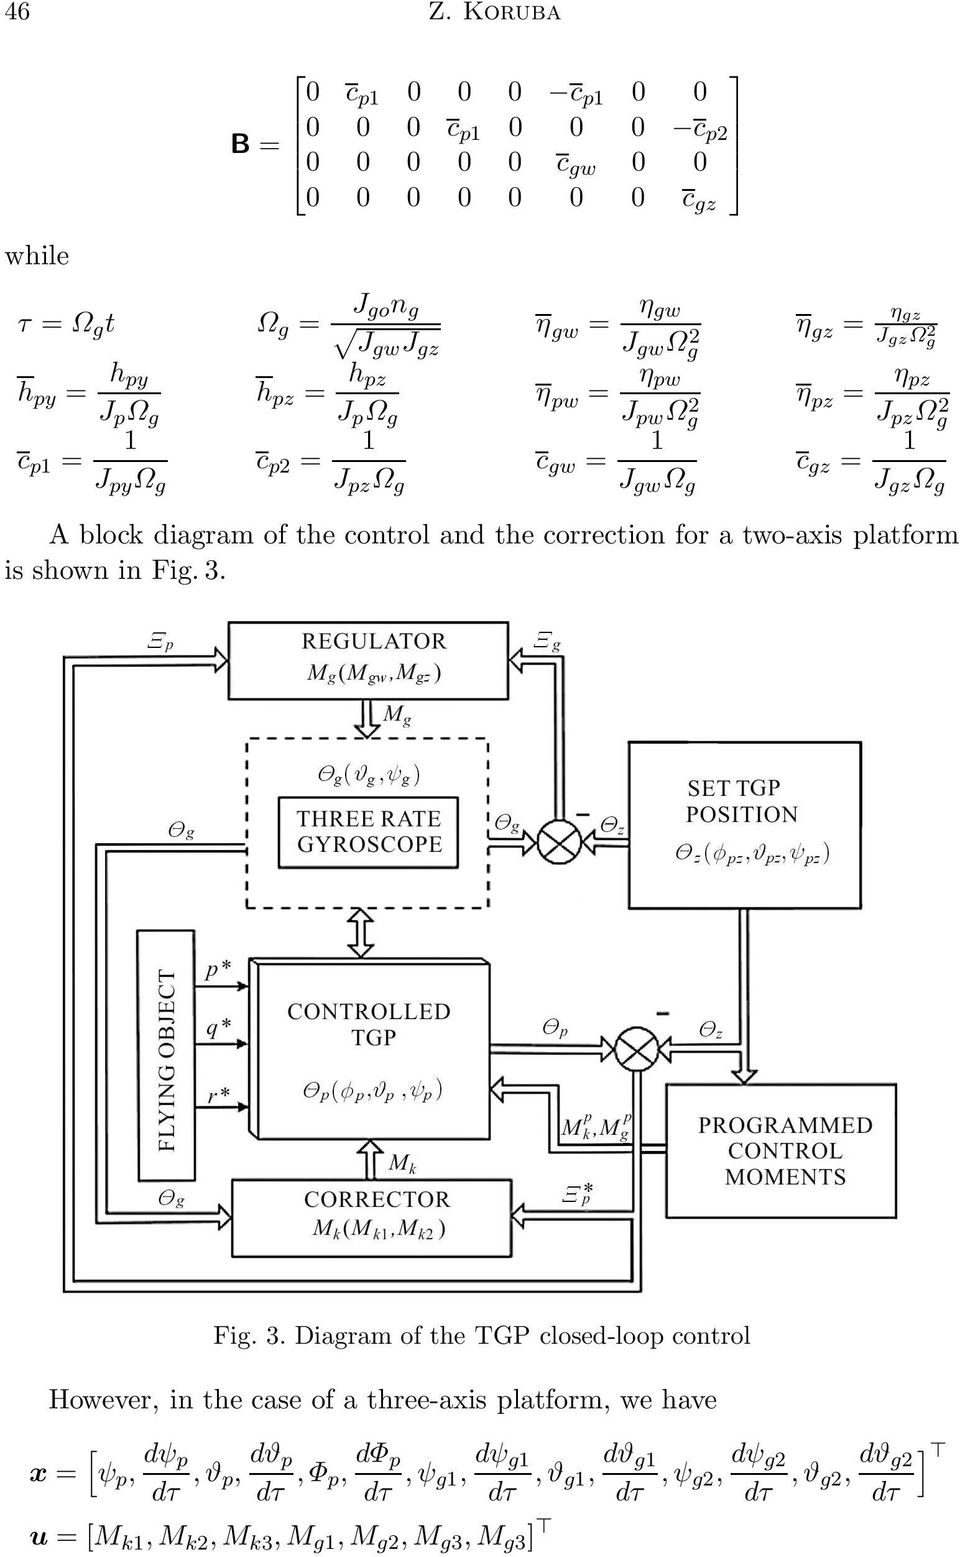 Ω g A block diagram of the control and the correction for a two-axis platform isshowninfig.3. Fig. 3.